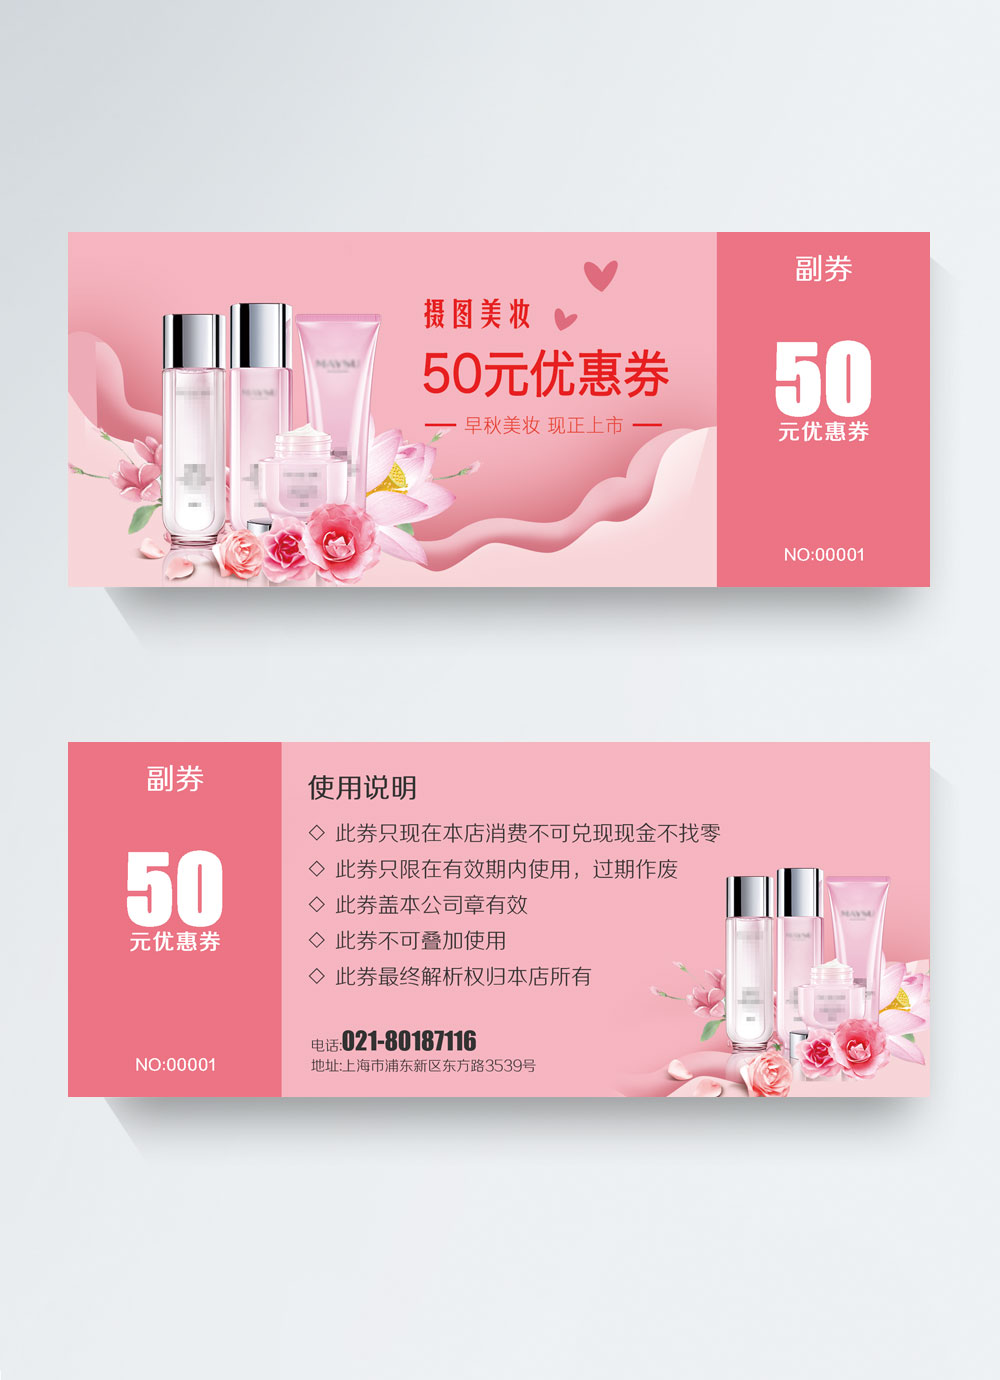 Skin Care Coupons Template Image Picture Free Download 400354164 Lovepik Com